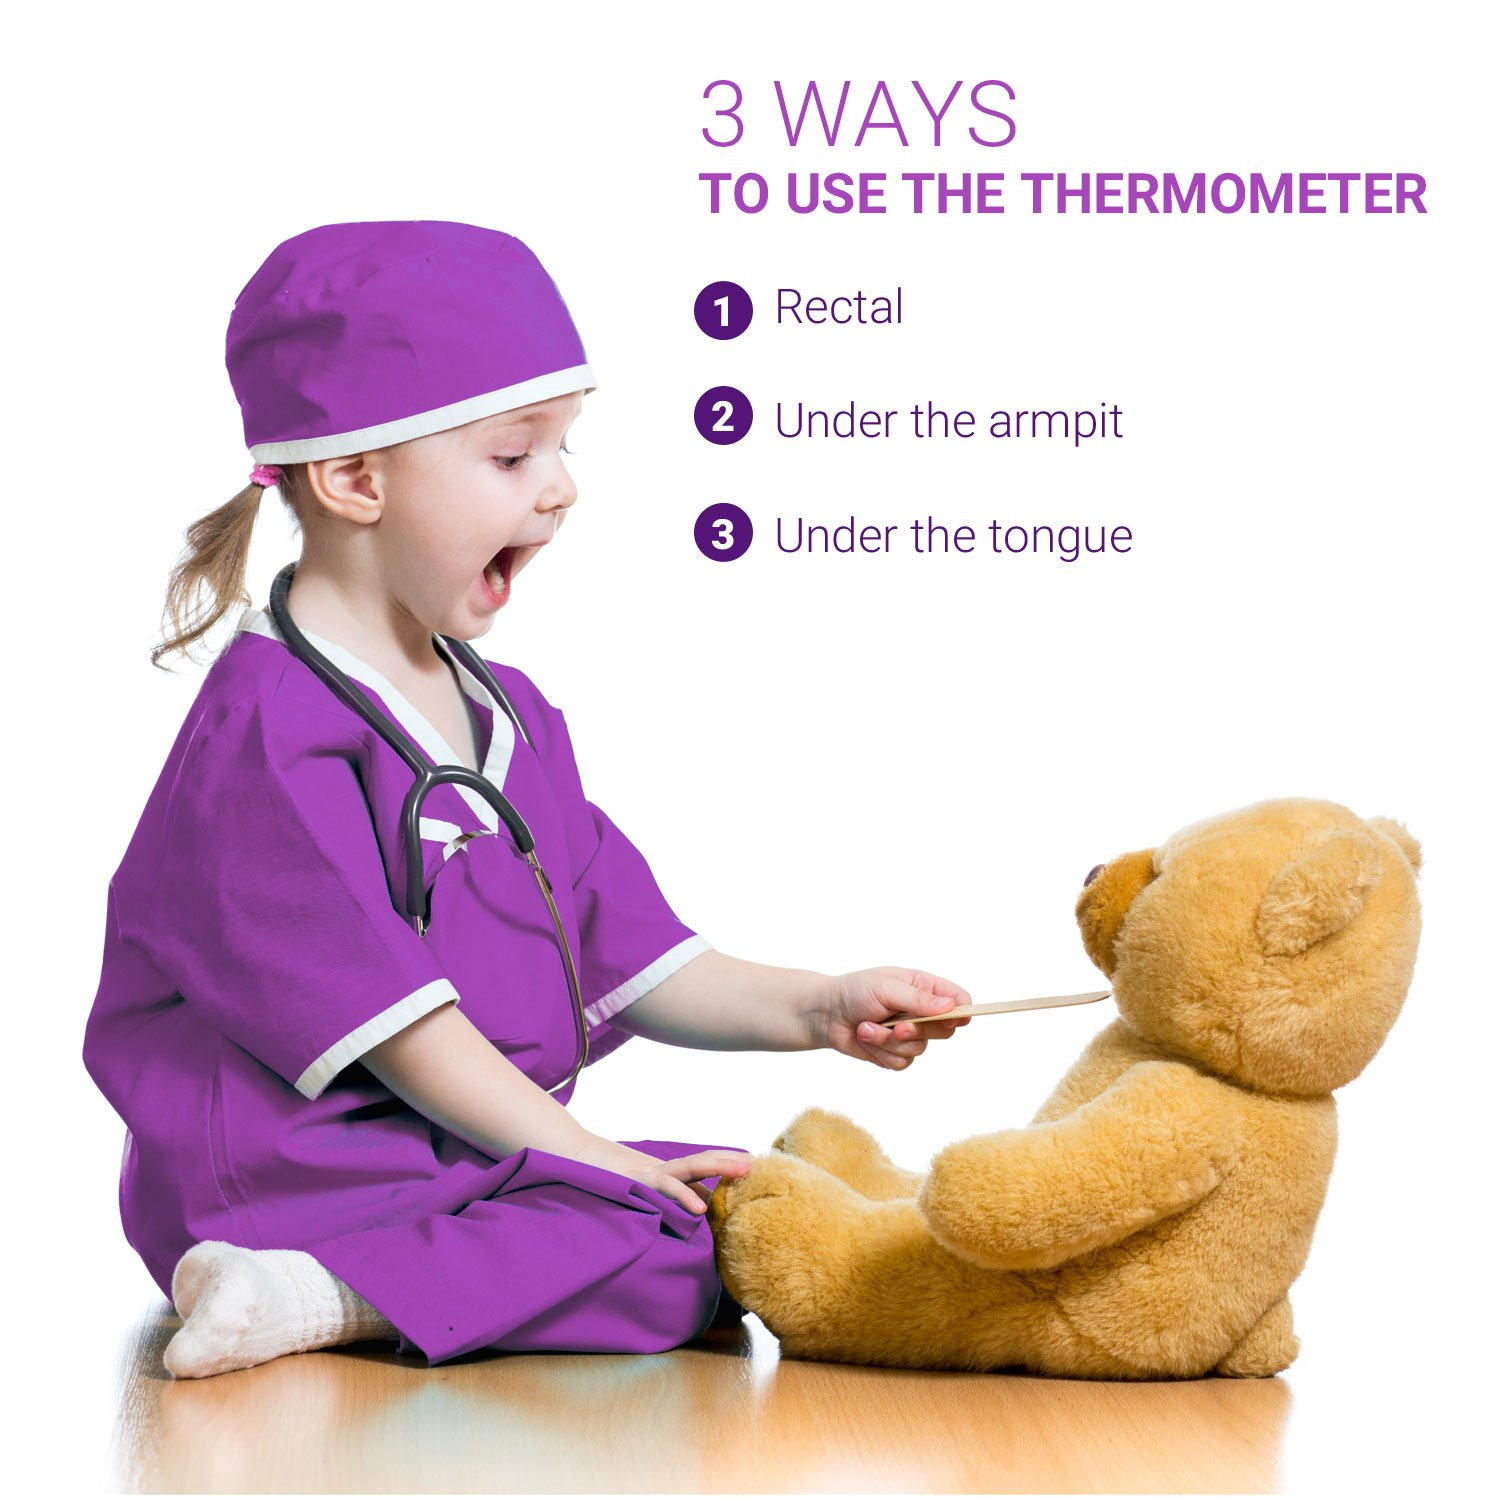 Baby Digital Thermometer - For Infants, Babies, Kids - 30 Seconds Read - FDA CE Approved - Flexible Tip - Waterproof - Extra Battery Included - Clinical Fever Alarm - Rectal Under The Arm/Tongue by Purple Safety (Image #5)